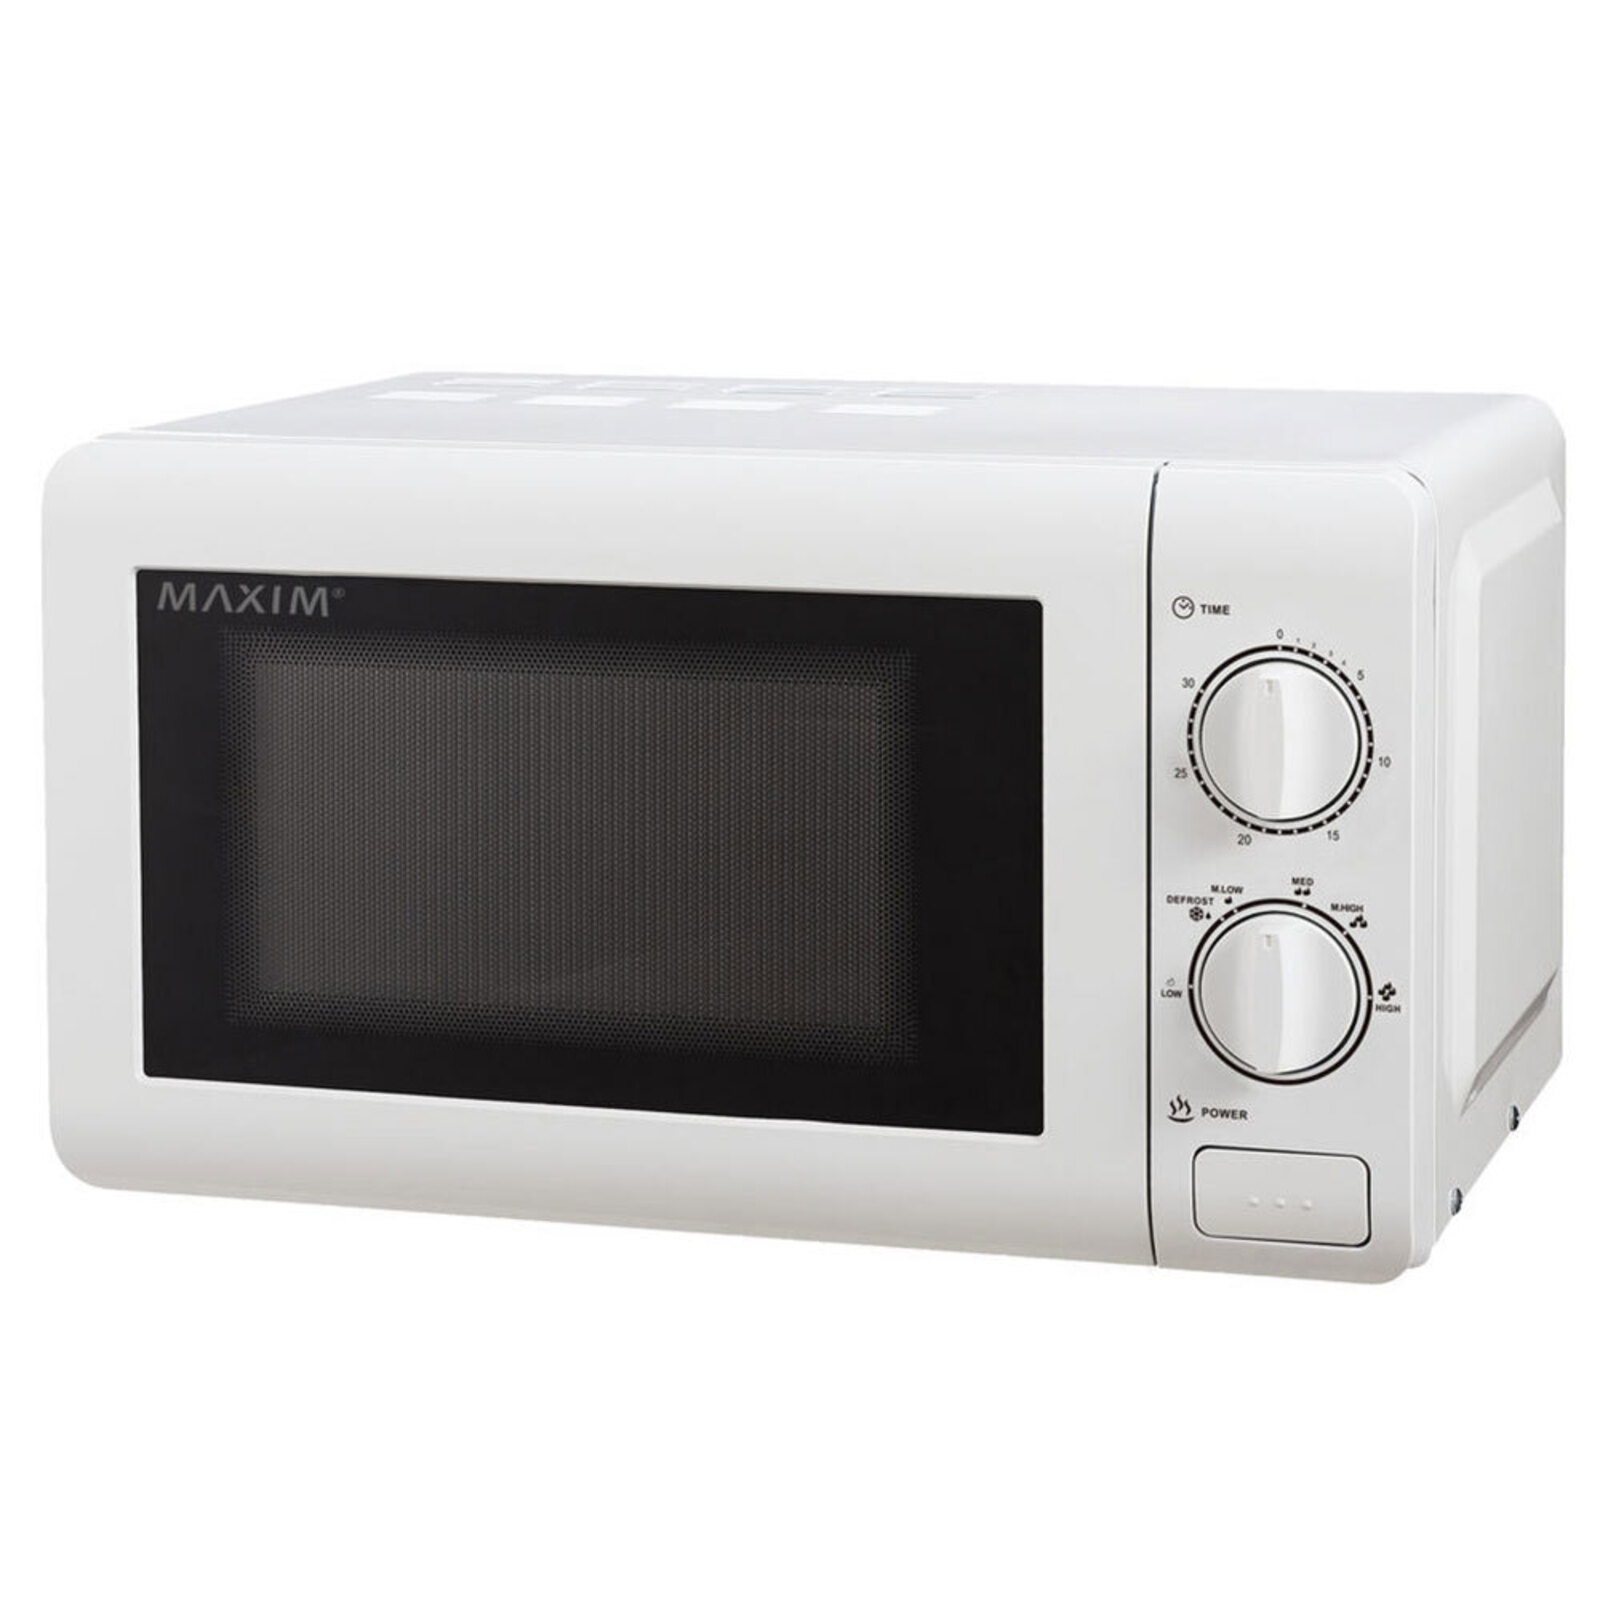 Maxim 20L 700W Countertop Manual Timer Electric Heat/Defrost Microwave Oven WHT